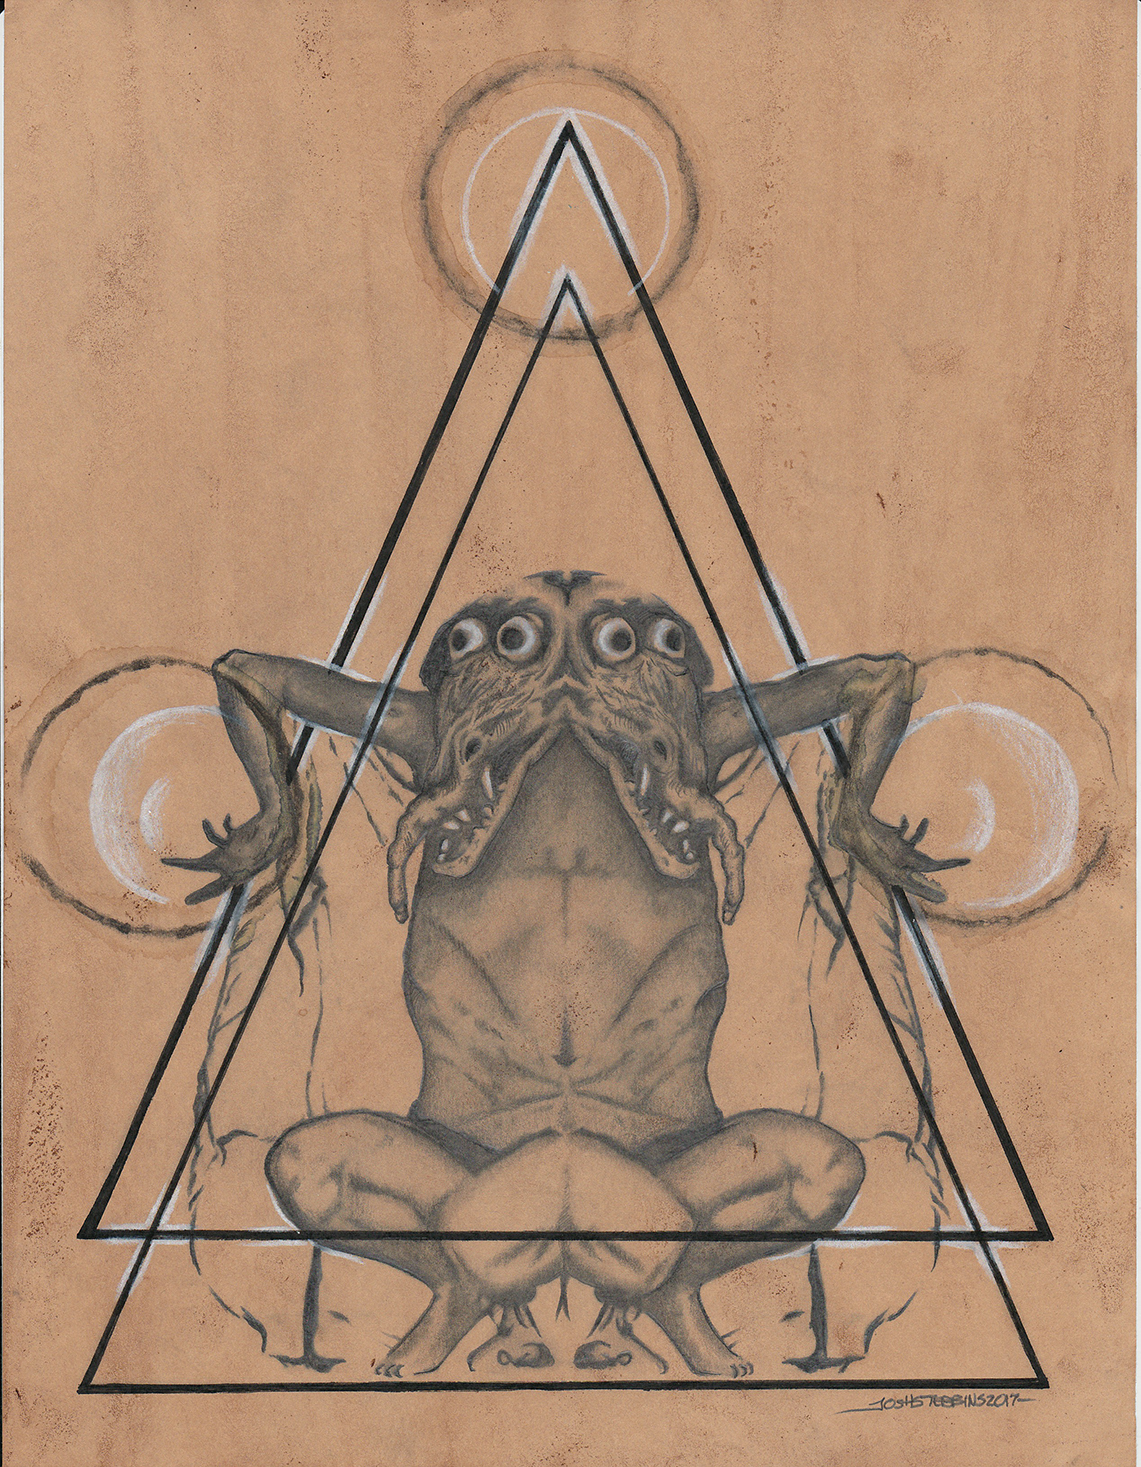 Josh Stebbins, The Incubus, Conjuring Black Triangles.